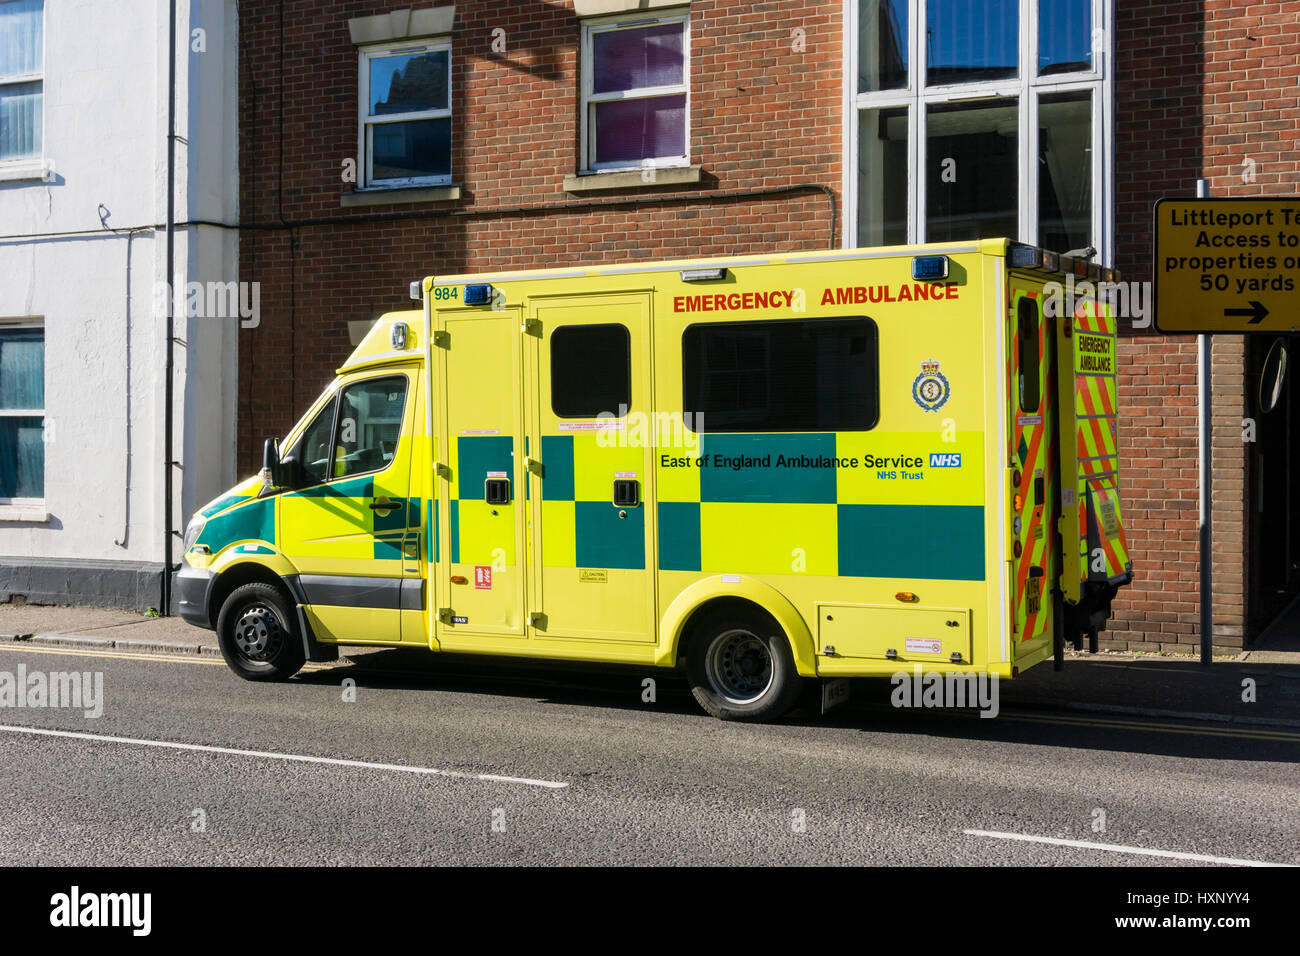 An ambulance from the East of England Ambulance Service NHS Trust.. - Stock Image